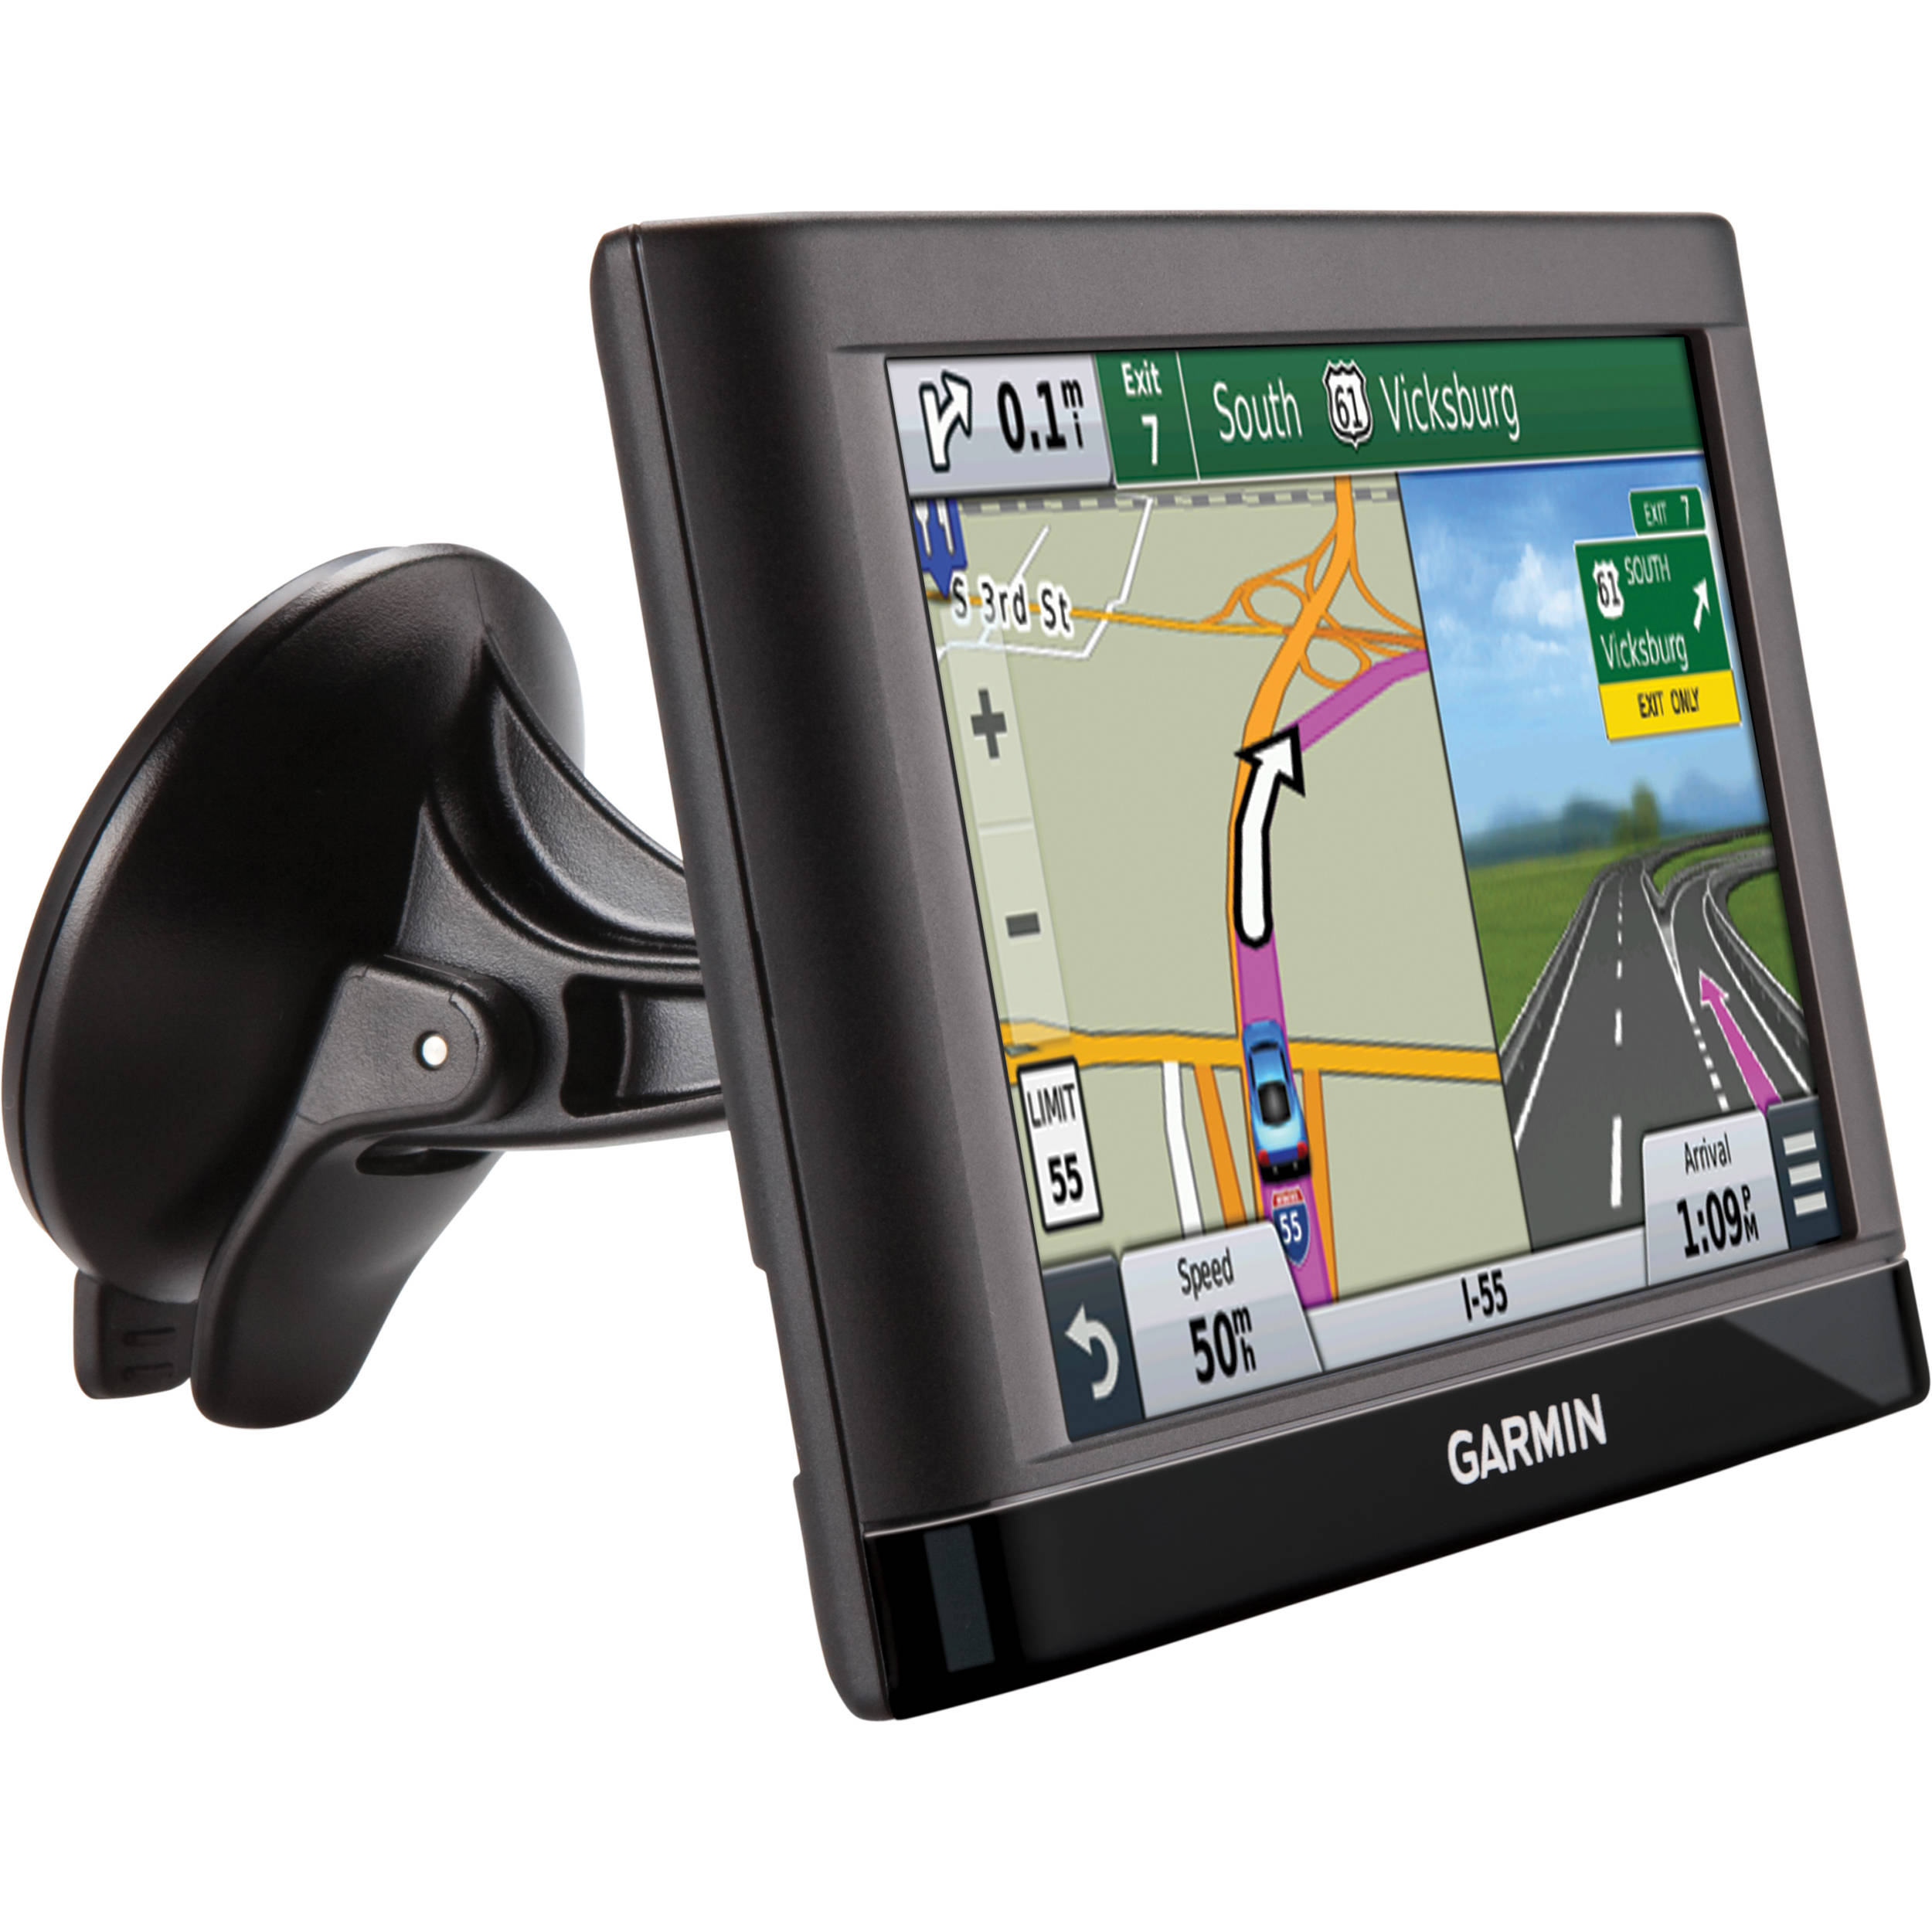 garmin lifetime map updates free with Garmin 010 01211 01 Nuvi 65 Lumens Gps on 36093359 together with Garmin Zumo 350lm Gps Navigation System For Motorcycles moreover Tomtom Map Update Garmin Map Update Services besides 010 N1211 12 Garmin Nuvi 66lmt 6 Gps Satnav Uk And Full Europe Lifetime Map And Traffic Updates furthermore 1001182908860910002434409.